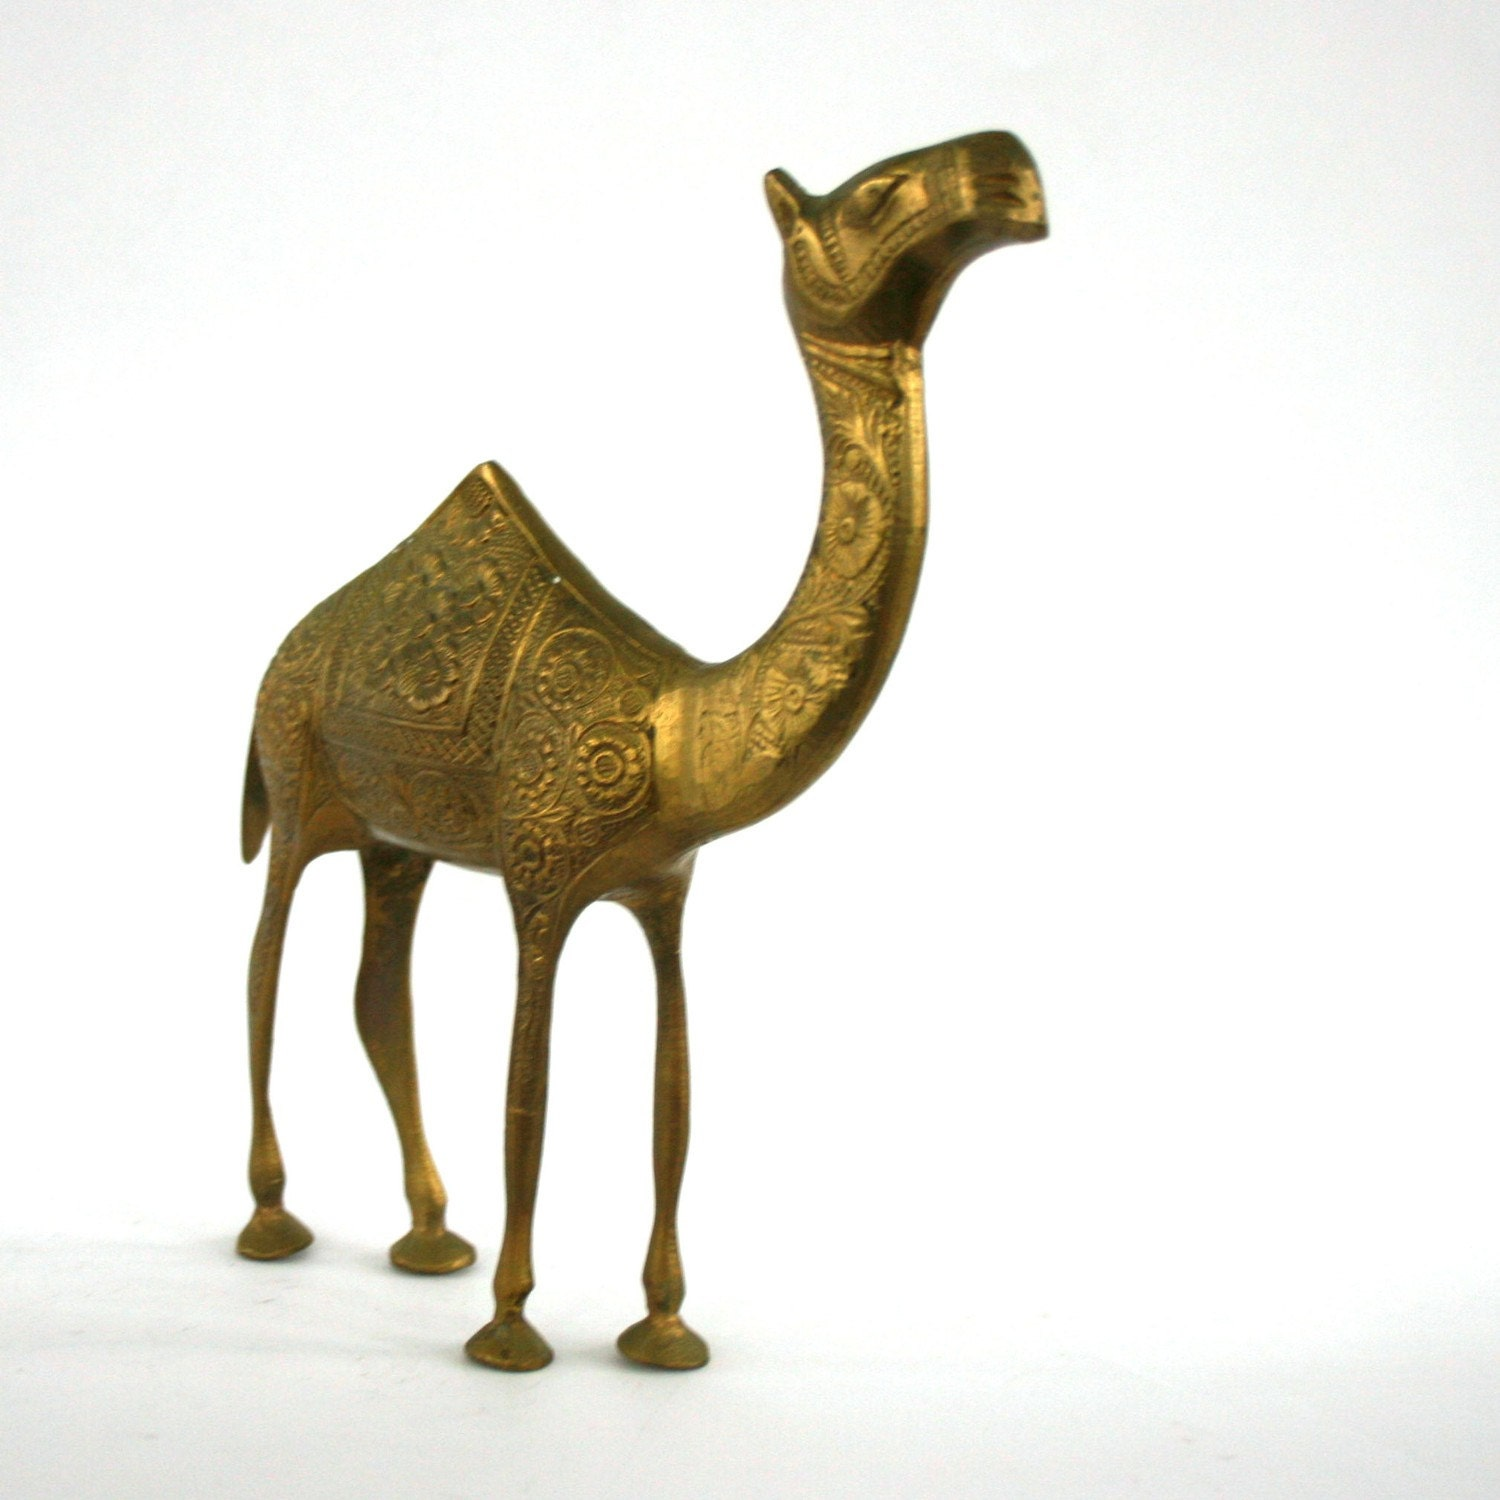 Vintage Brass Camel Figurine Magic on mid century modern home decor